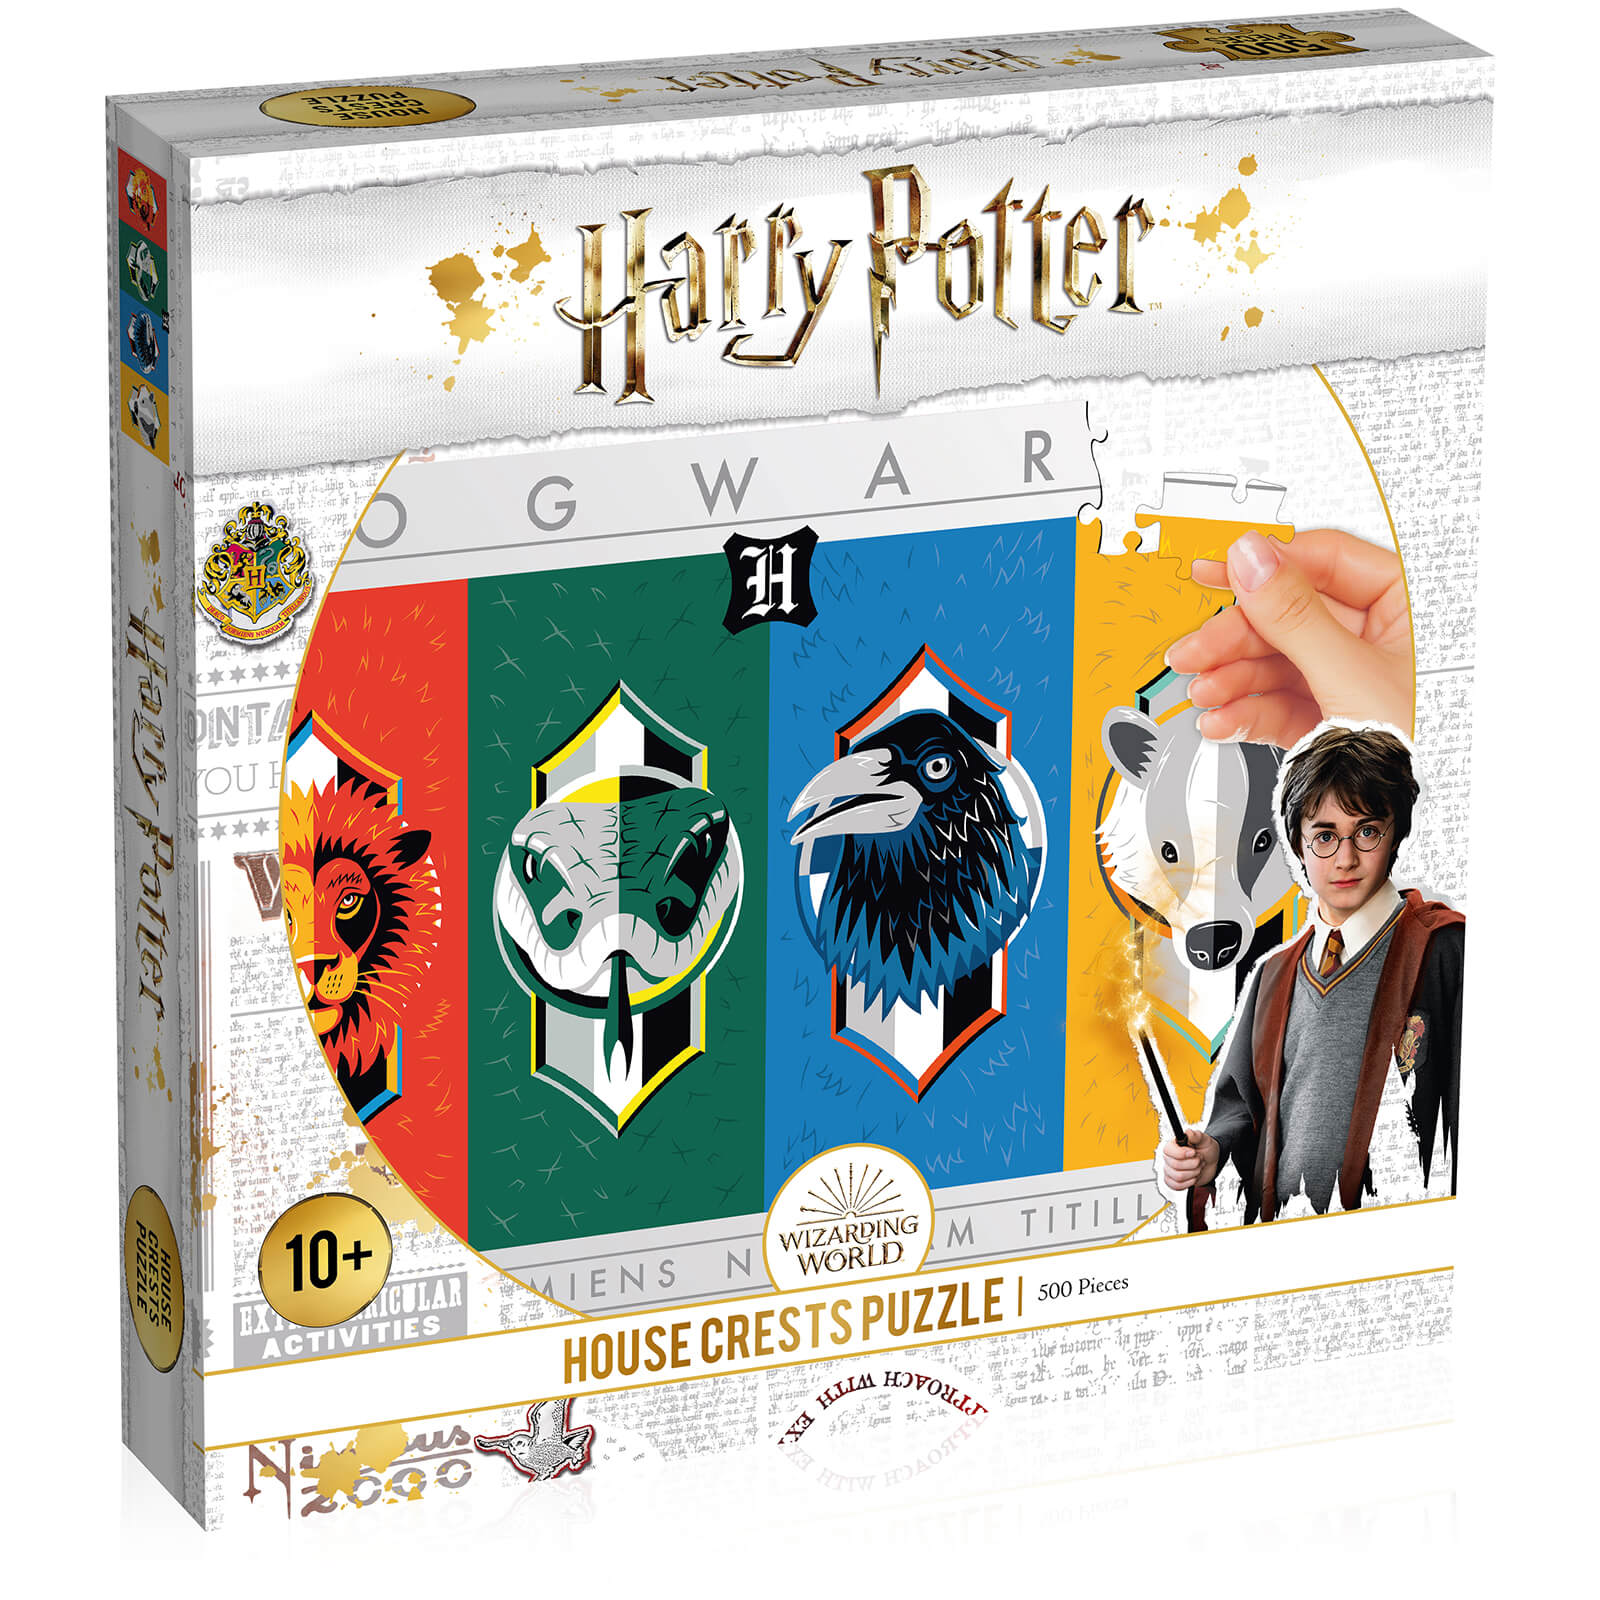 Image of 500 Piece Jigsaw Puzzle - Harry Potter House Crests Edition